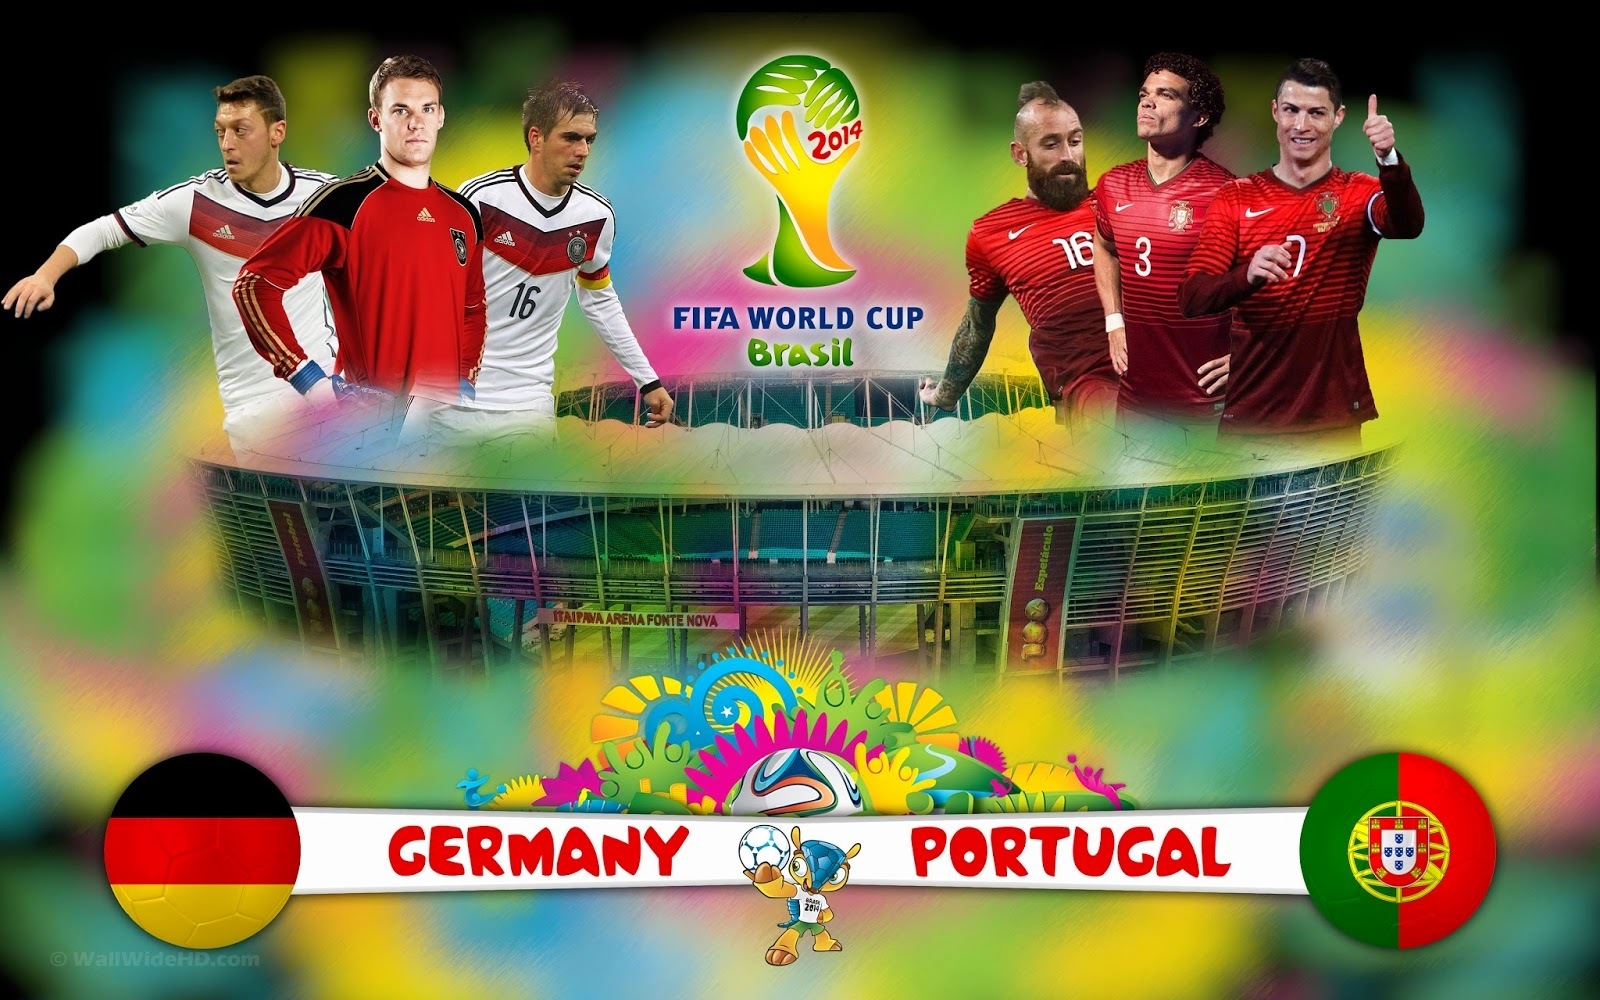 http://sportstainment.us/world-cup/germany-vs-portugal-arena-fonte-nova-salvador-match-preview-details